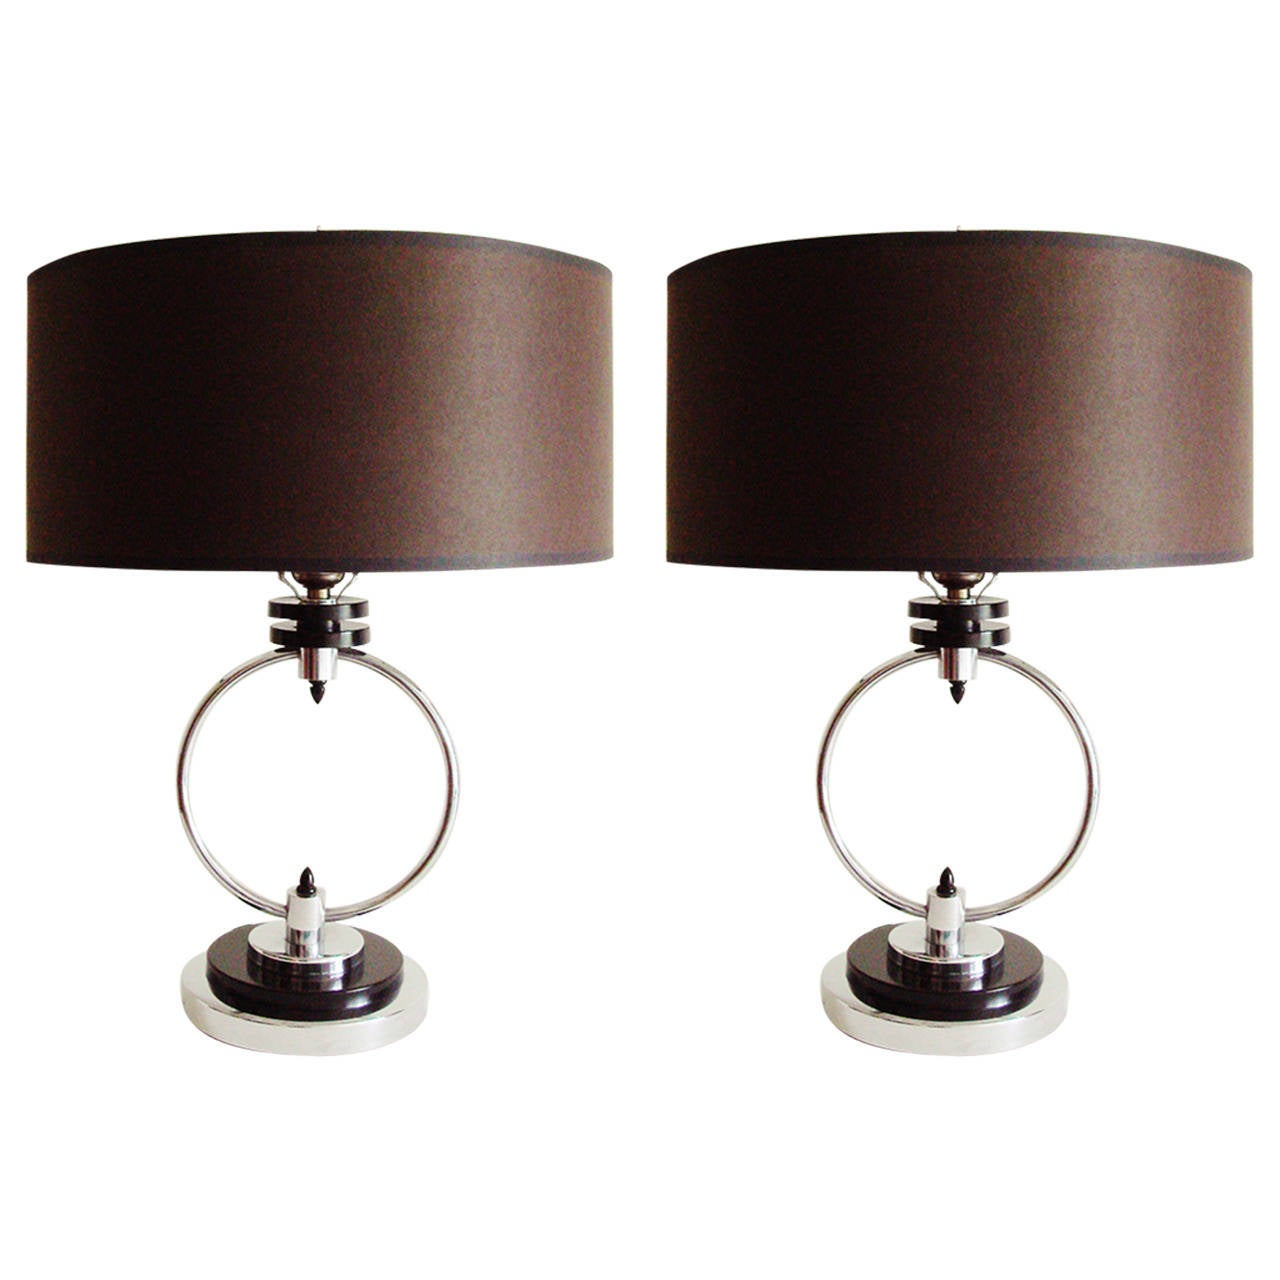 Pair of American Art Deco or Machine Age Chrome and Black Table or Bedside Lamps For Sale